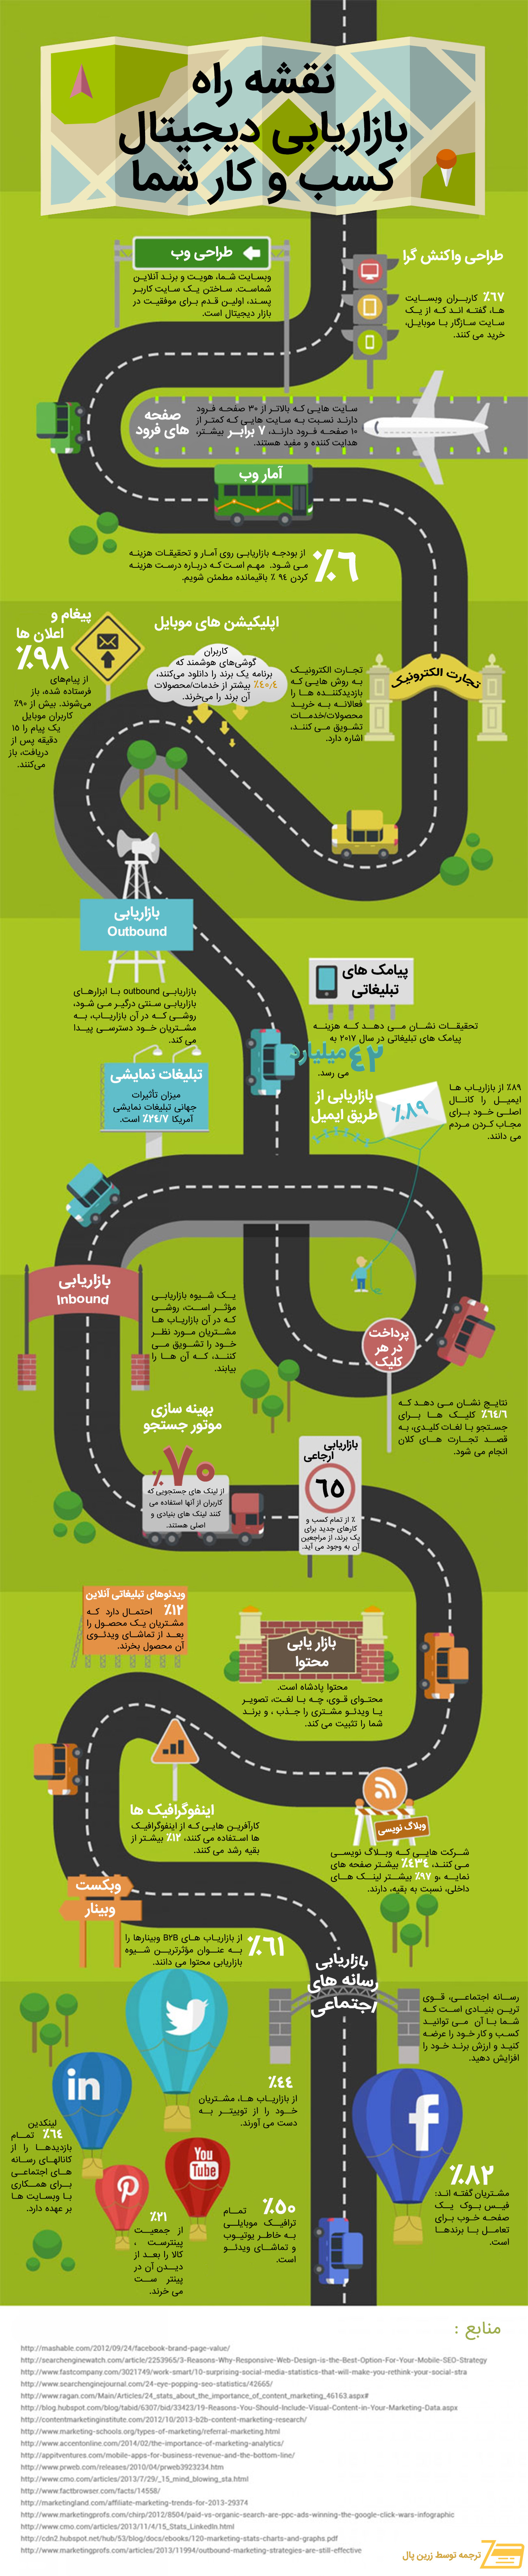 digital-marketing-road-map-for-your-business-infographic